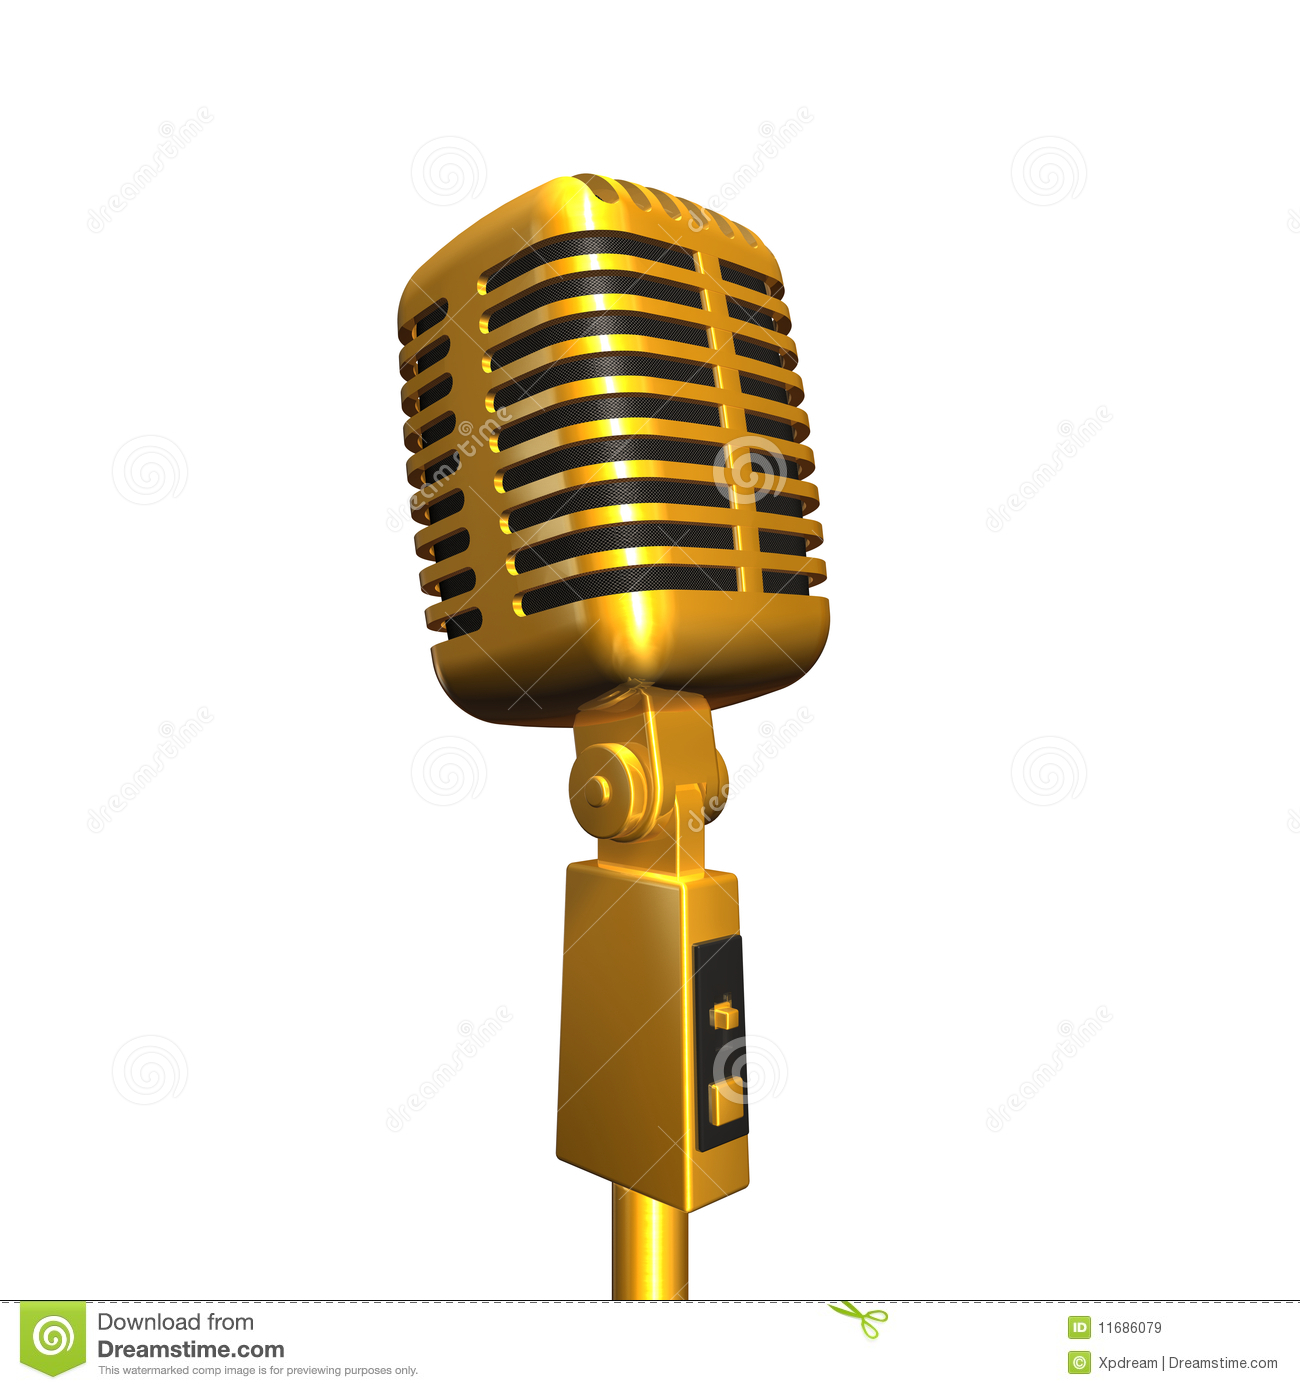 microphone royalty free stock images image 11686079 microphone clip art free images microphone clip art free